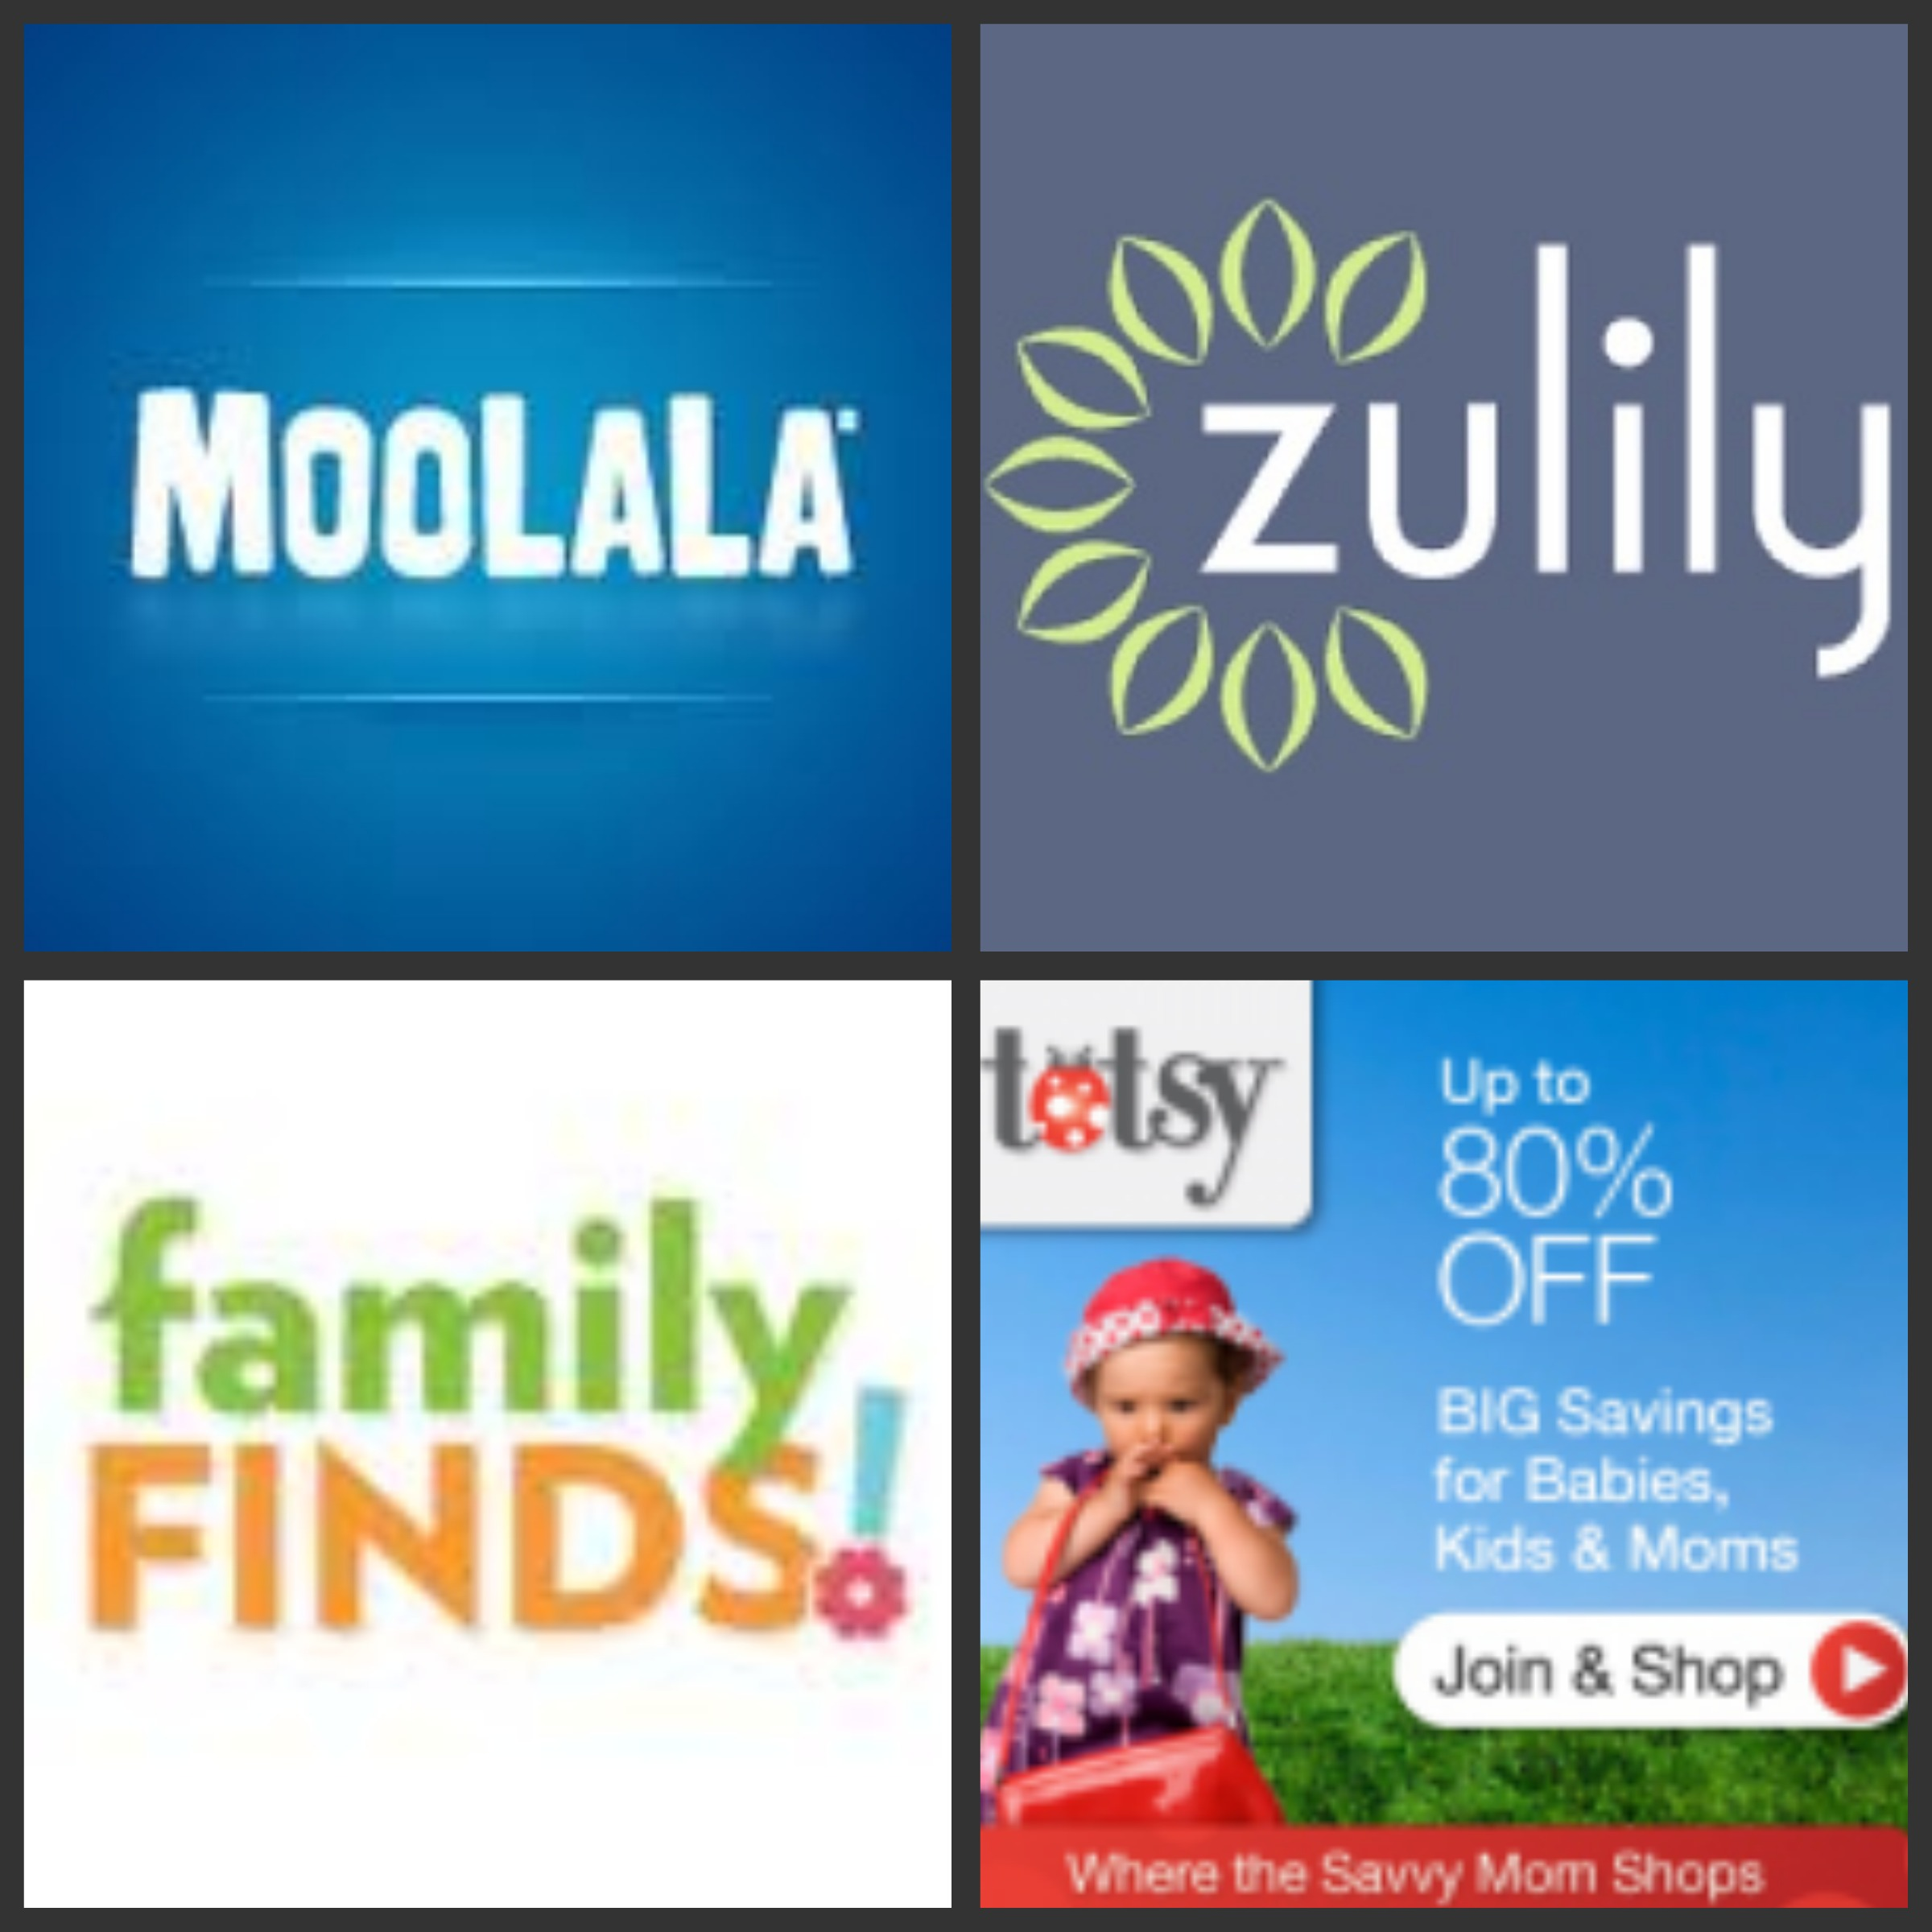 """""""Daily Deals"""" """"Family Bargains"""" """"Deal Sites"""" """"Daily Deal Site"""" """"Groupon"""" """"Moolala"""" """"Zulily"""" """"Totsy"""" """"Family Finds"""""""